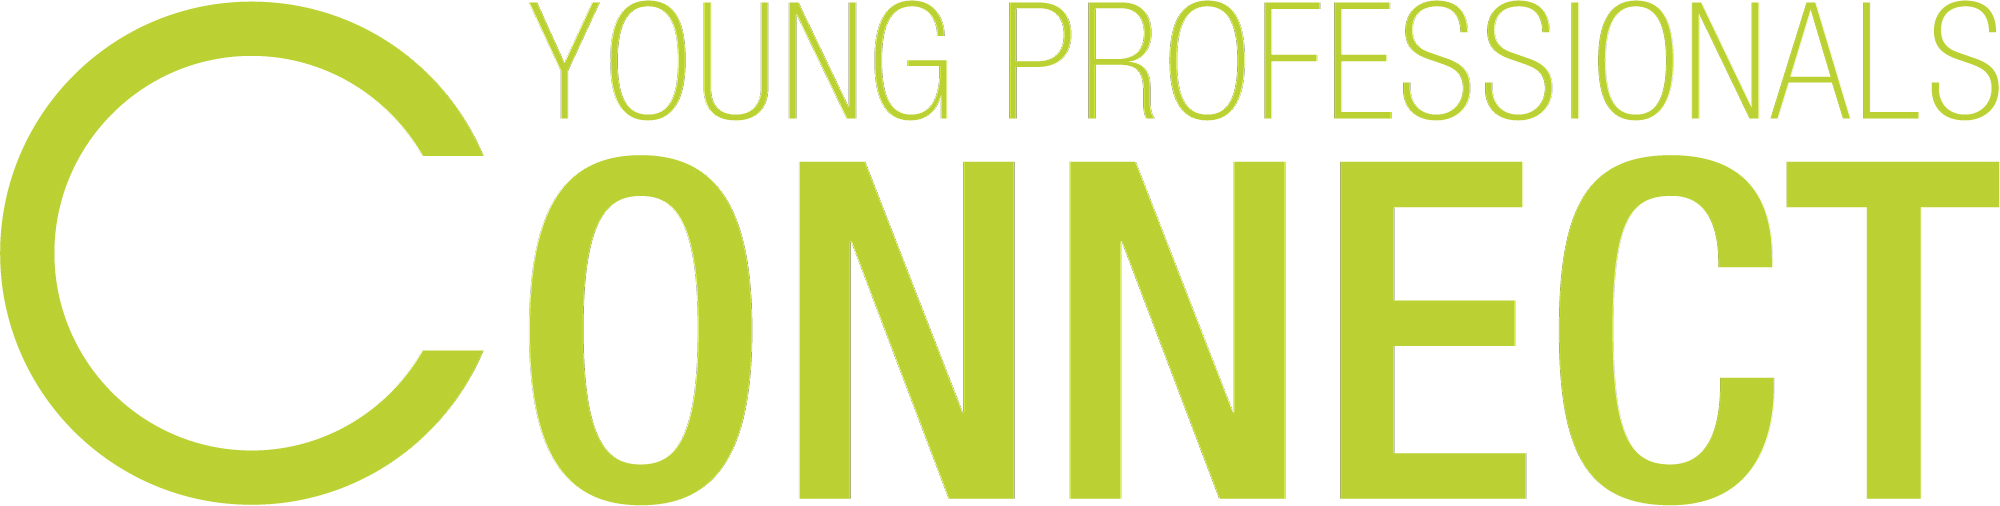 YPC Young Professionals Connect GmbH